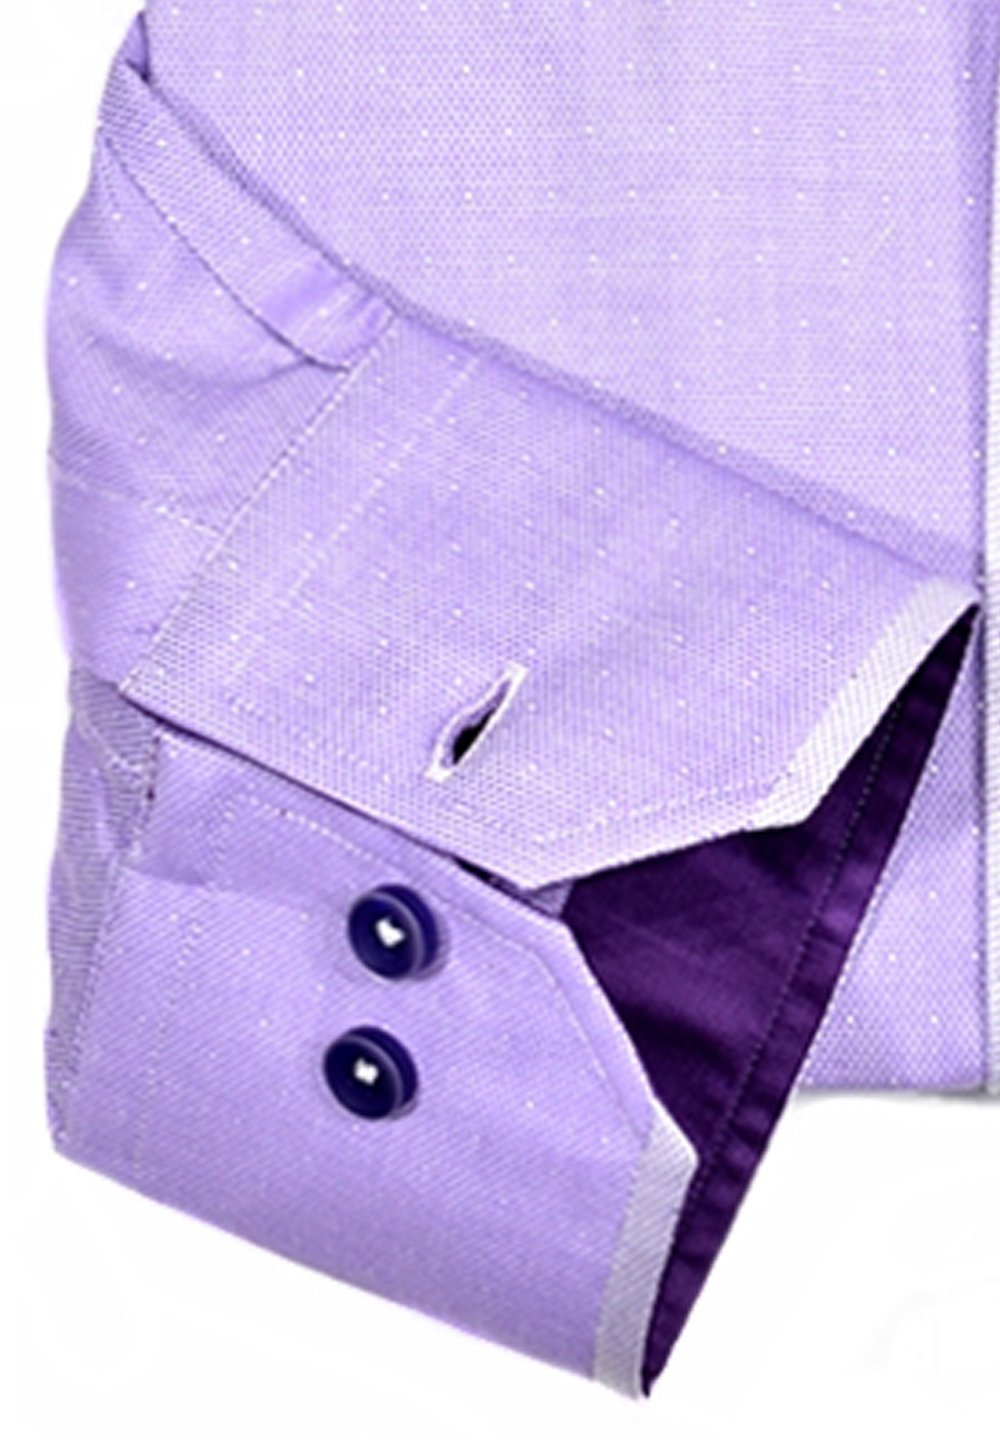 W725 Lilac Engineered Men's Shirt